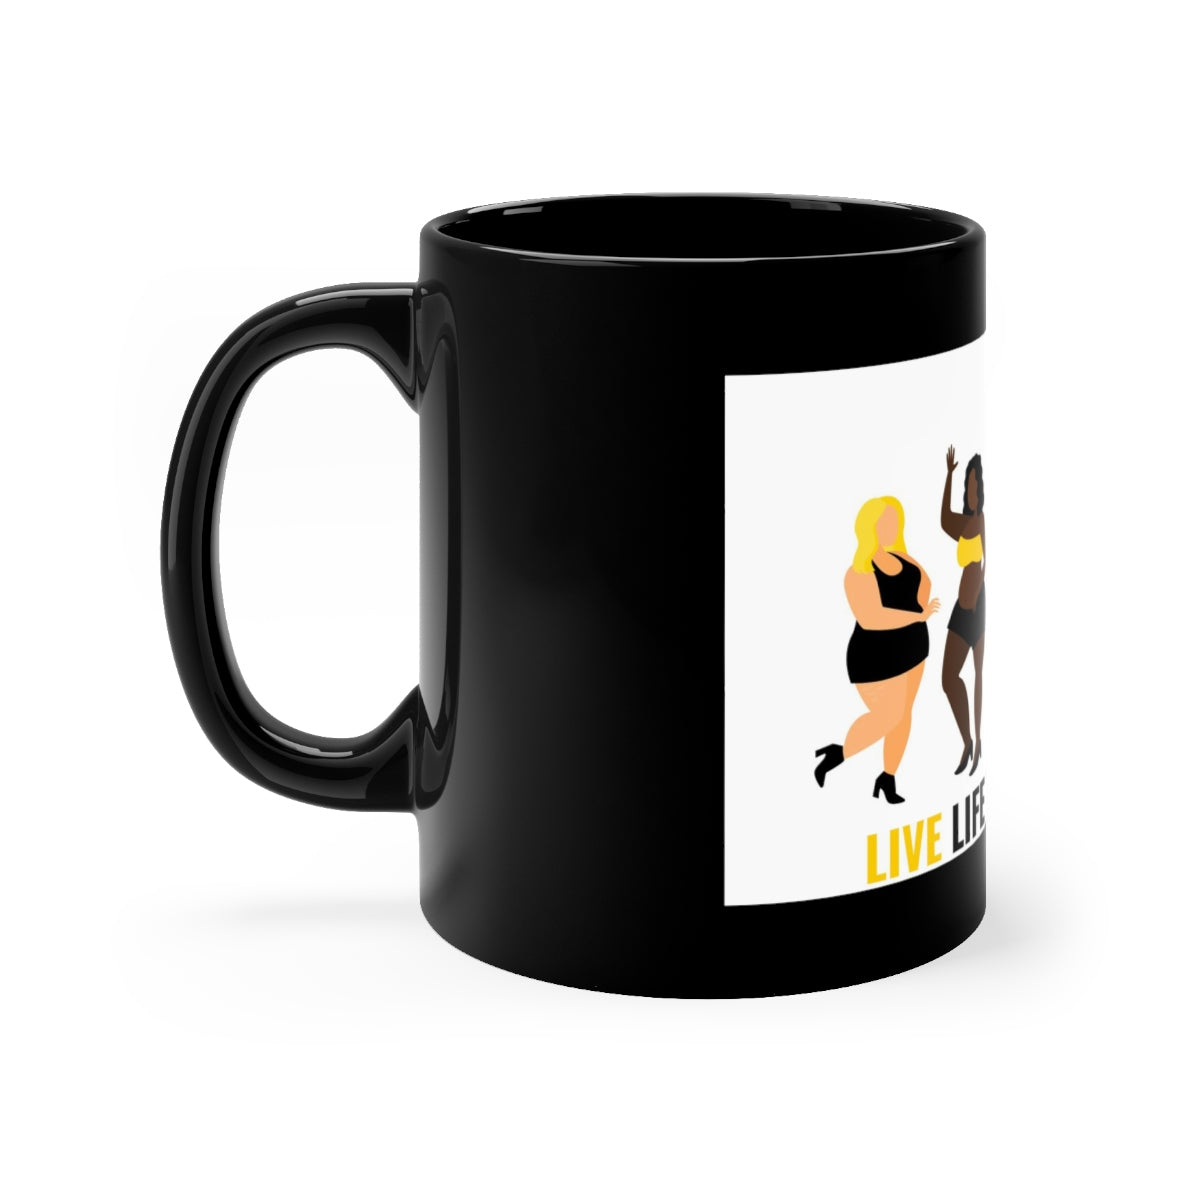 Five Toes Down Live Life Black Mug 11oz